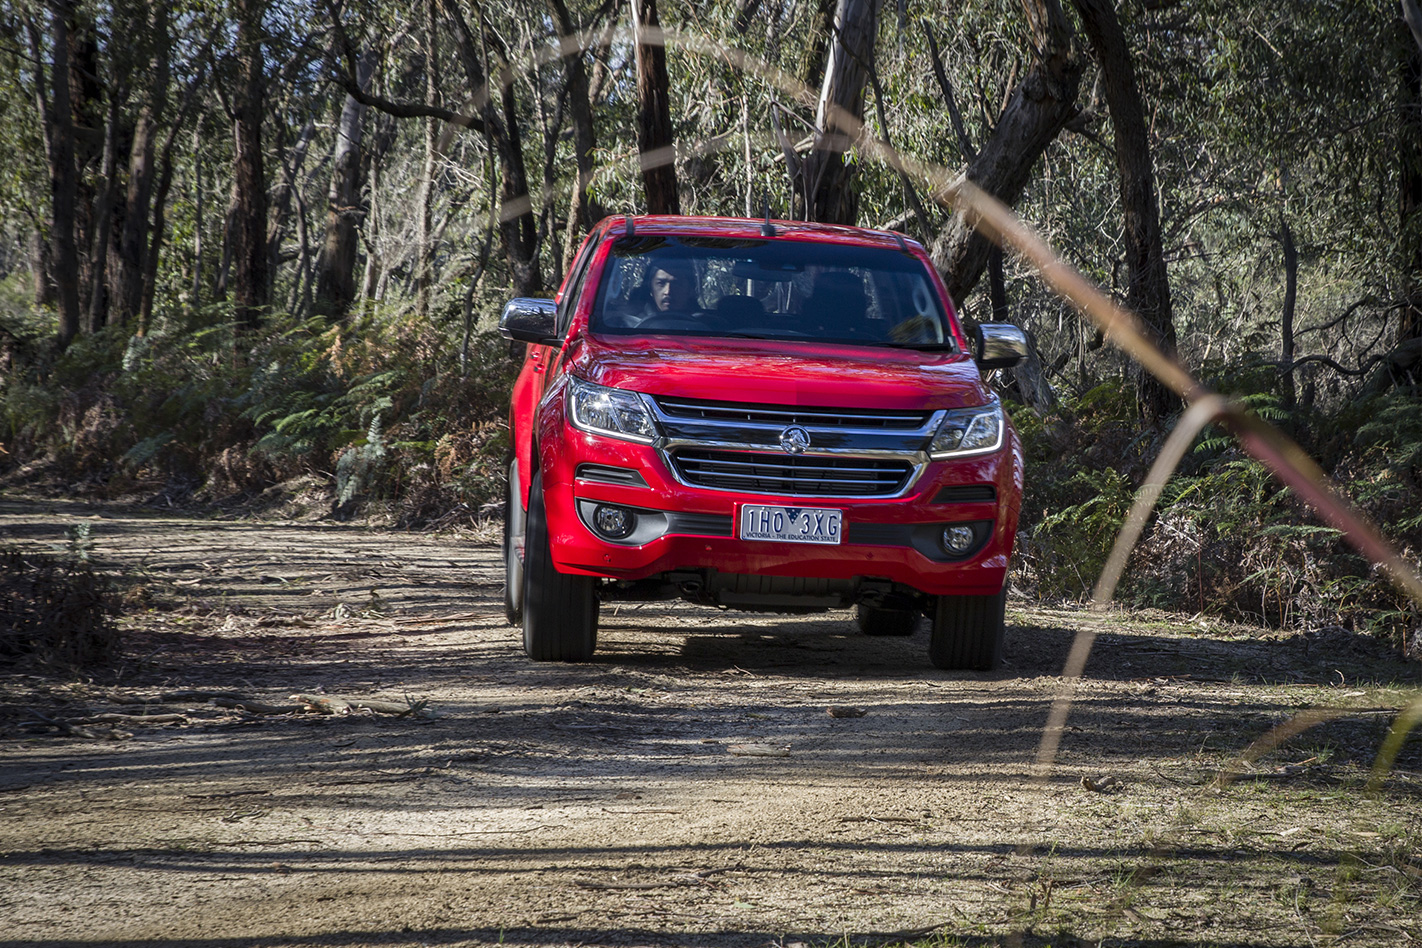 Holden Colorado MY17 front driving